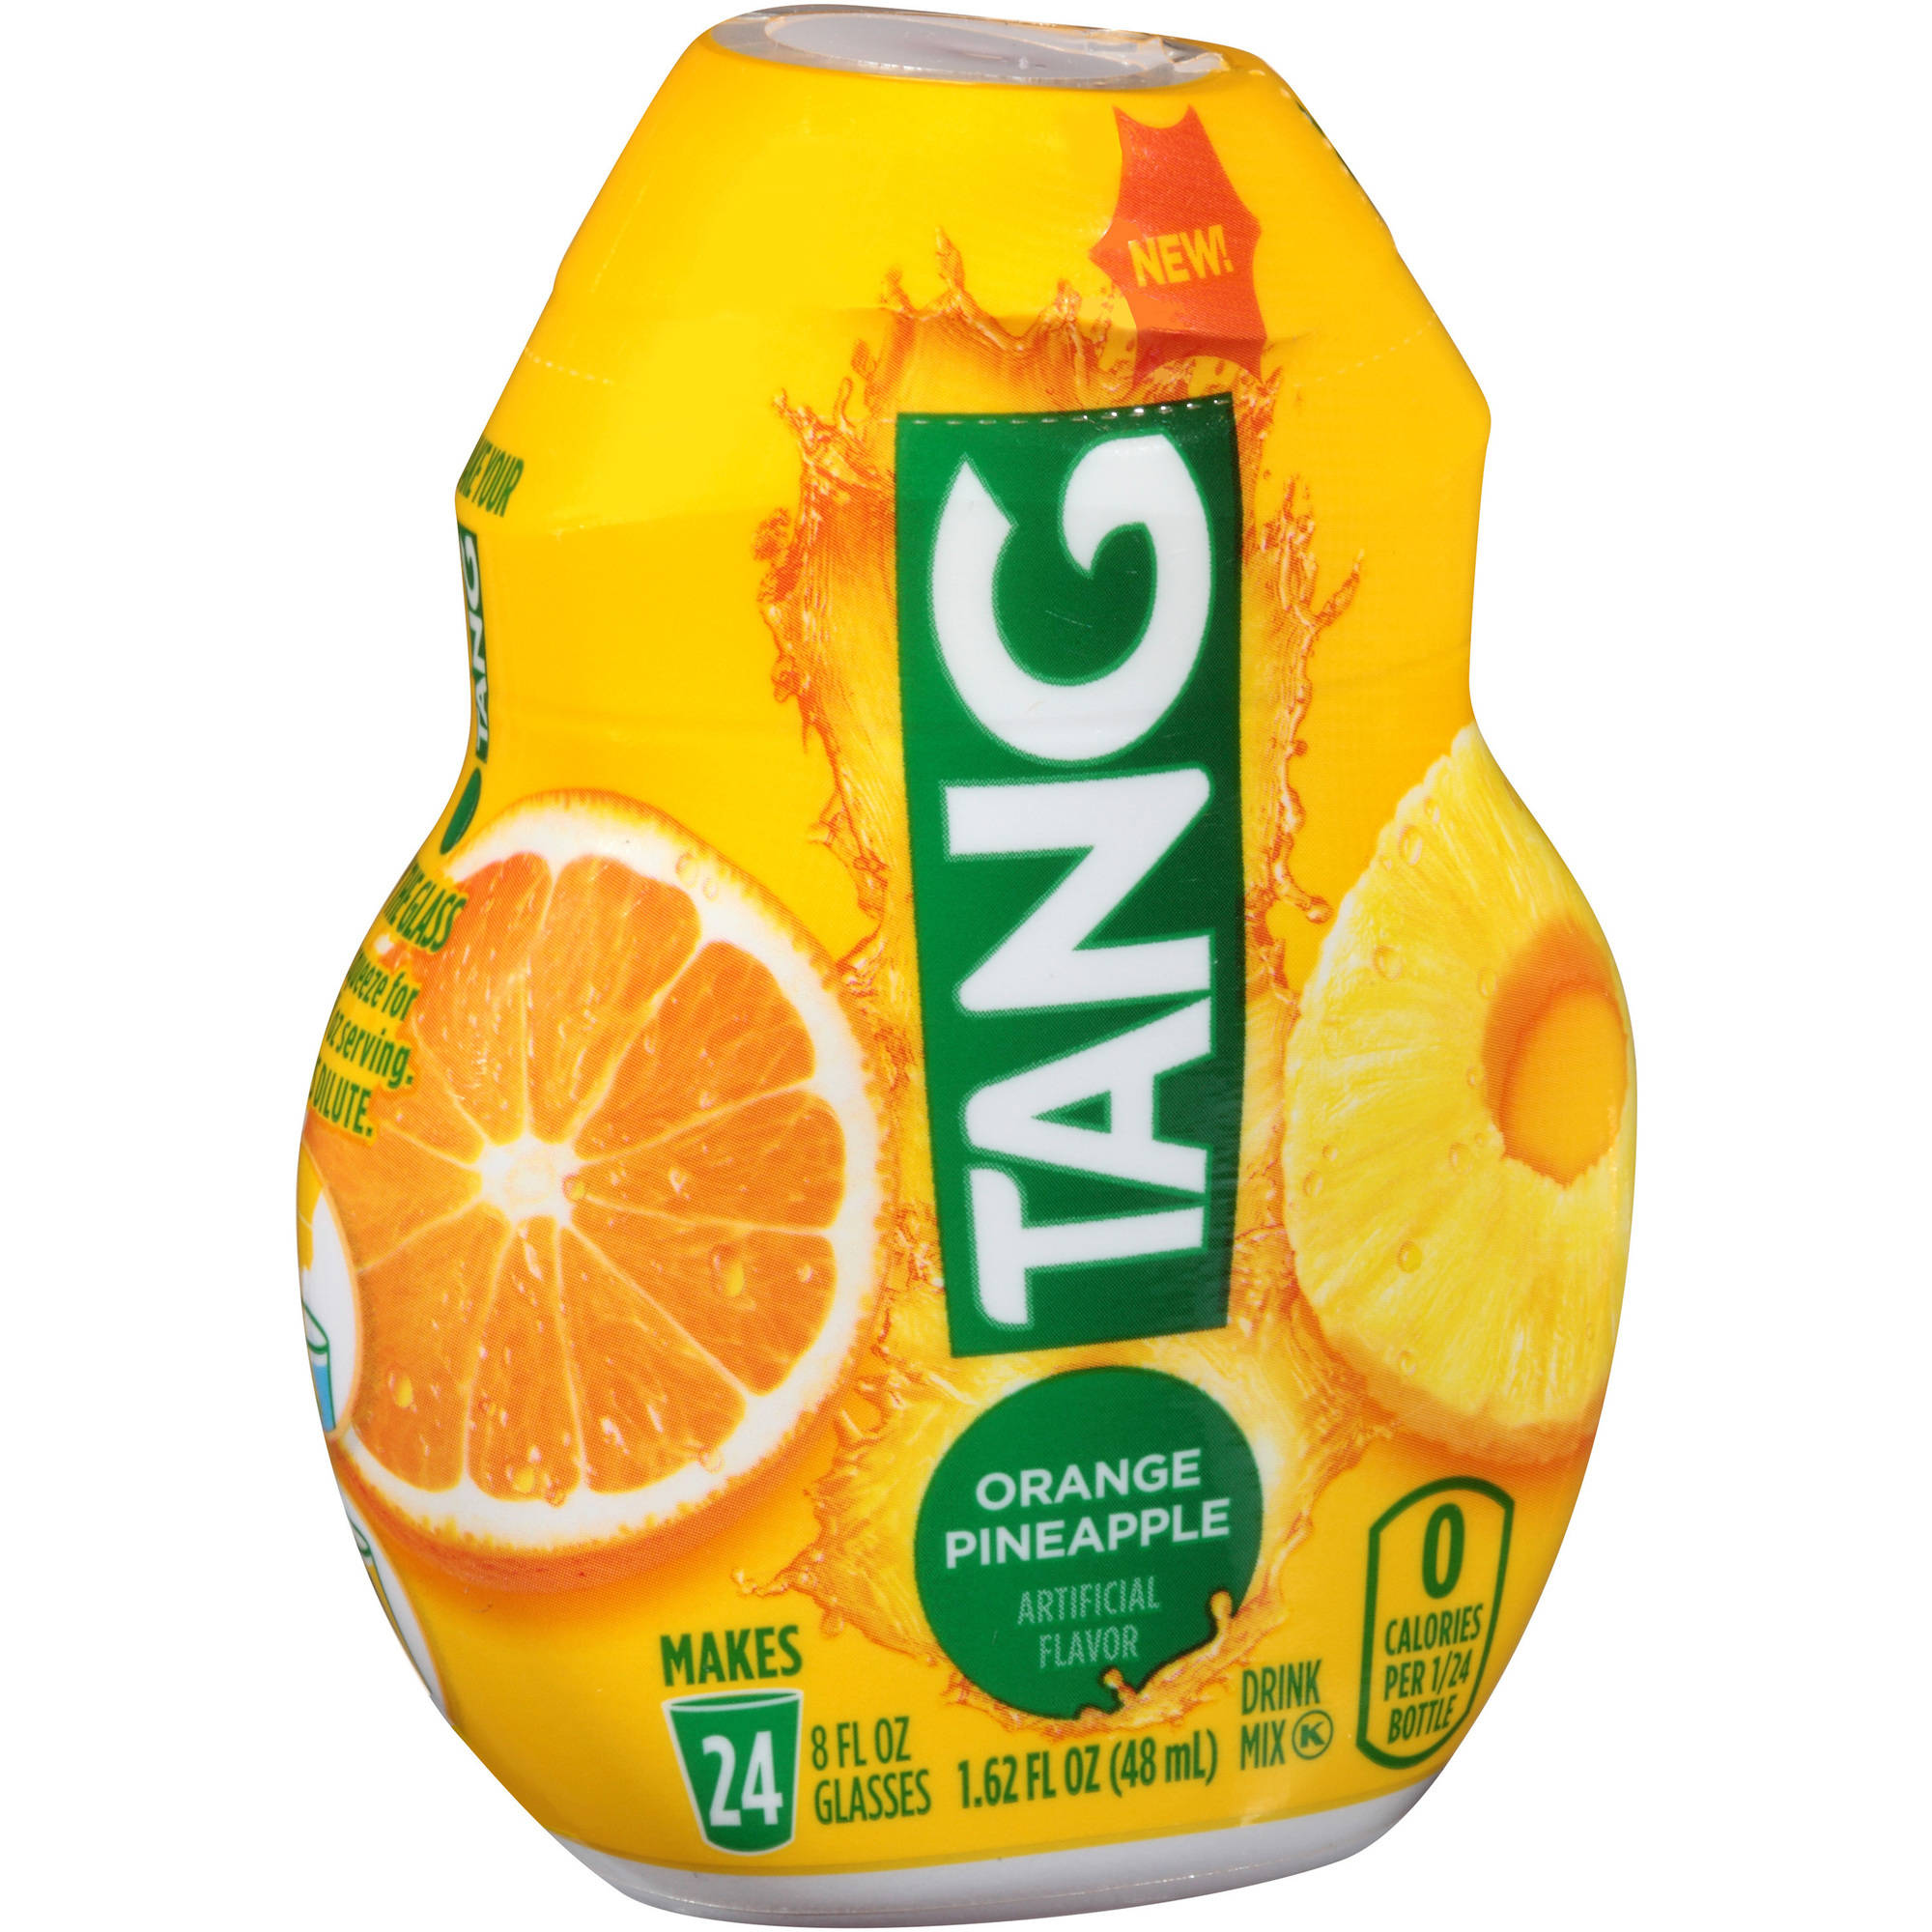 Tang Orange Pineapple Liquid Drink Mix 1.62 fl. oz. Bottle